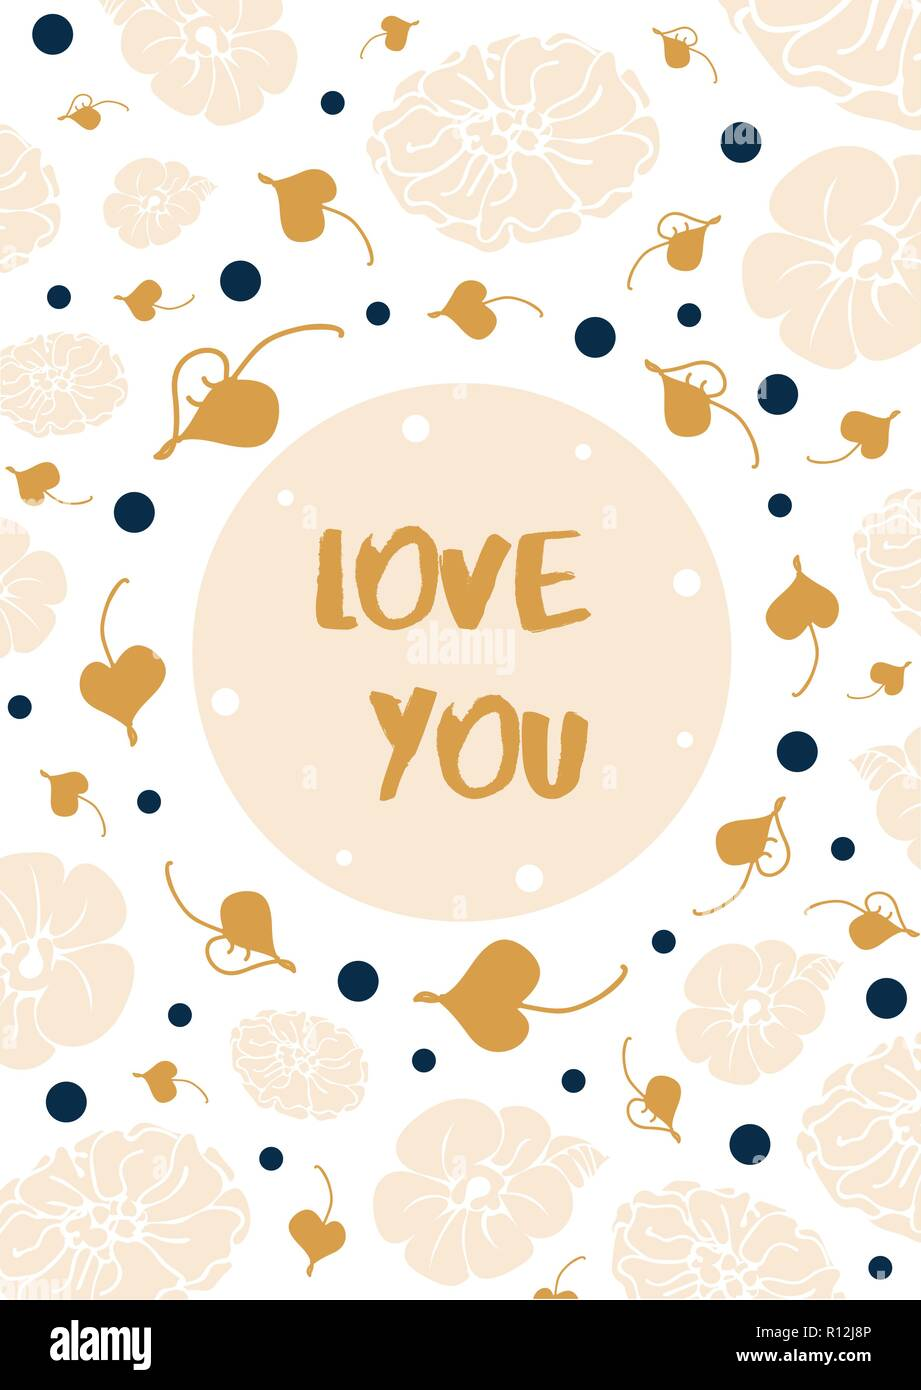 Vintage floral card with text 'Love you'. Gentle white and beige with blue and golden. Vector. For web and printing - Stock Vector